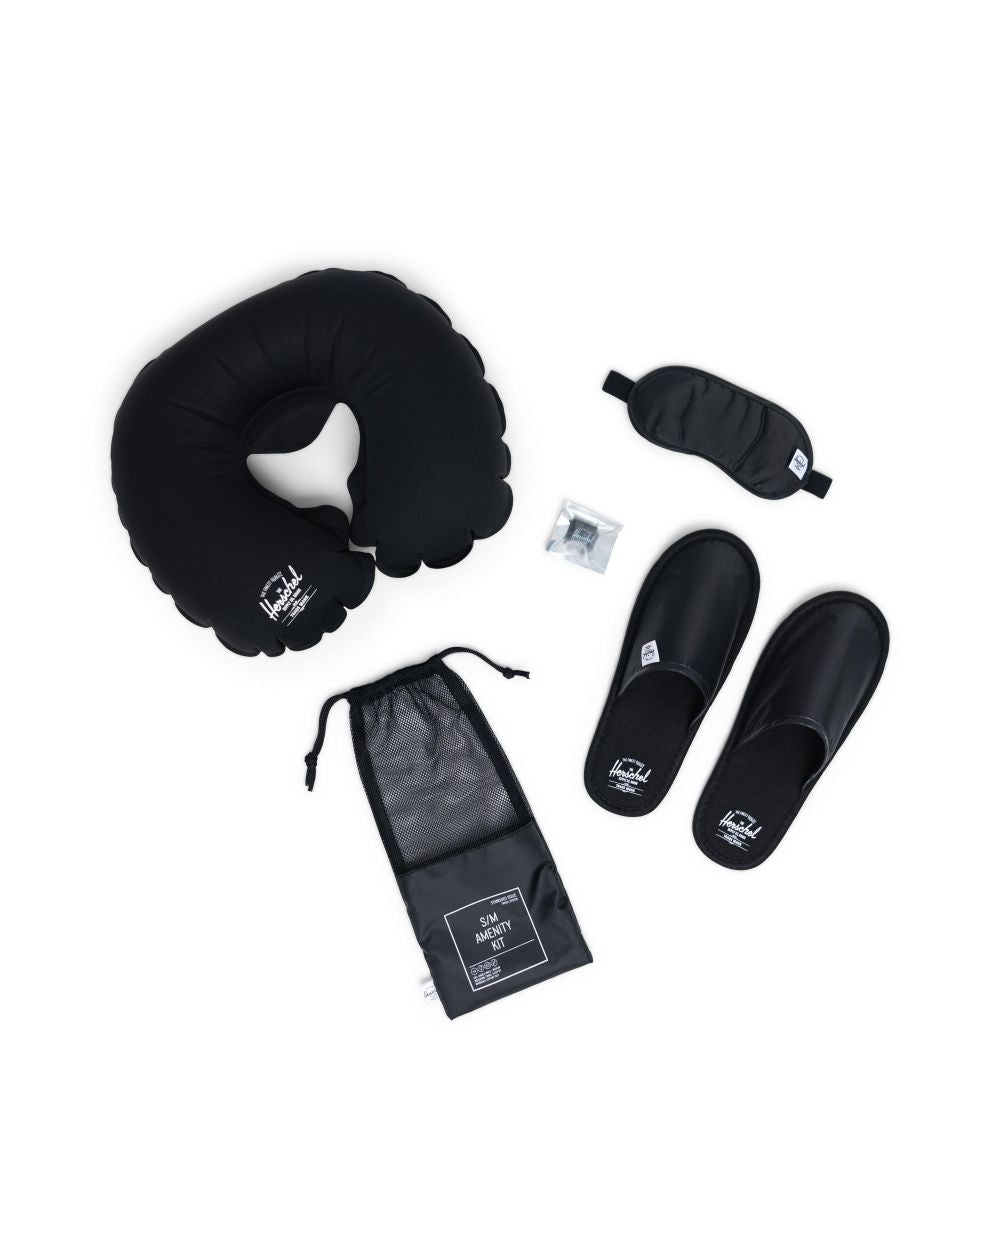 Amenity Travel Kit - Black